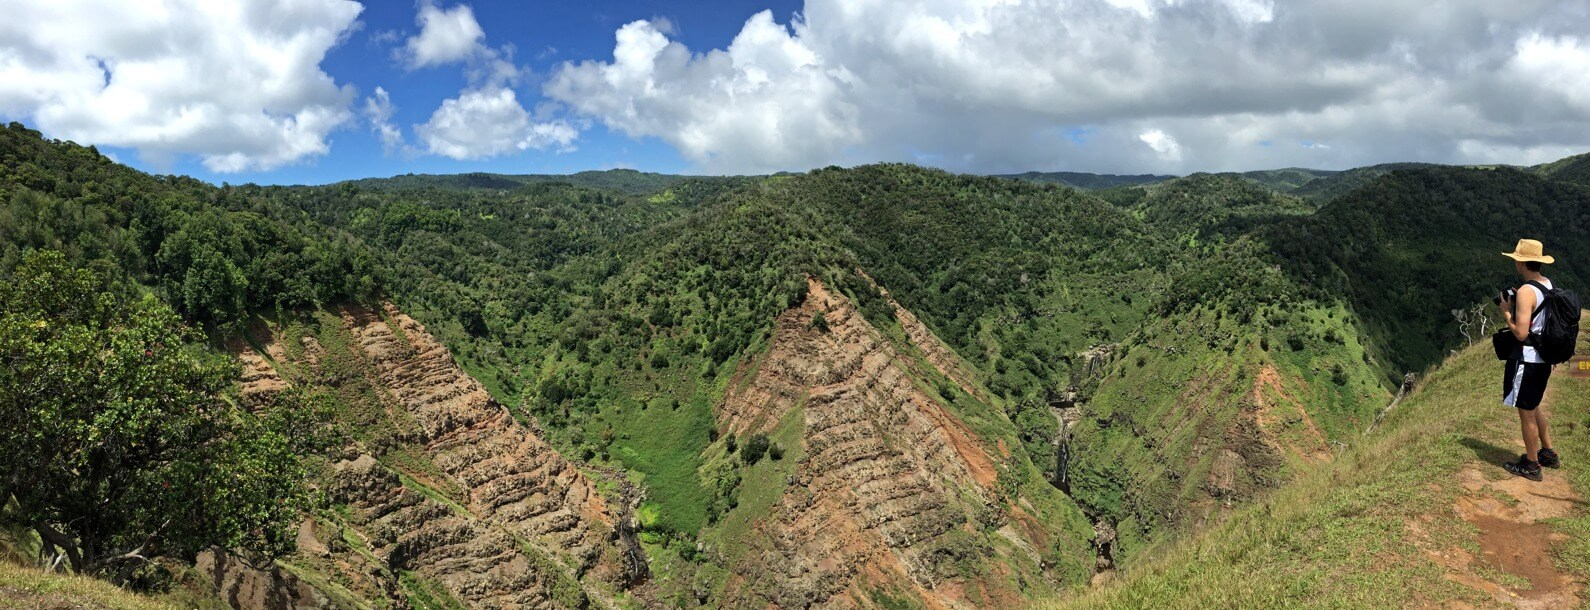 Poomau Canyon Lookout, Kauai